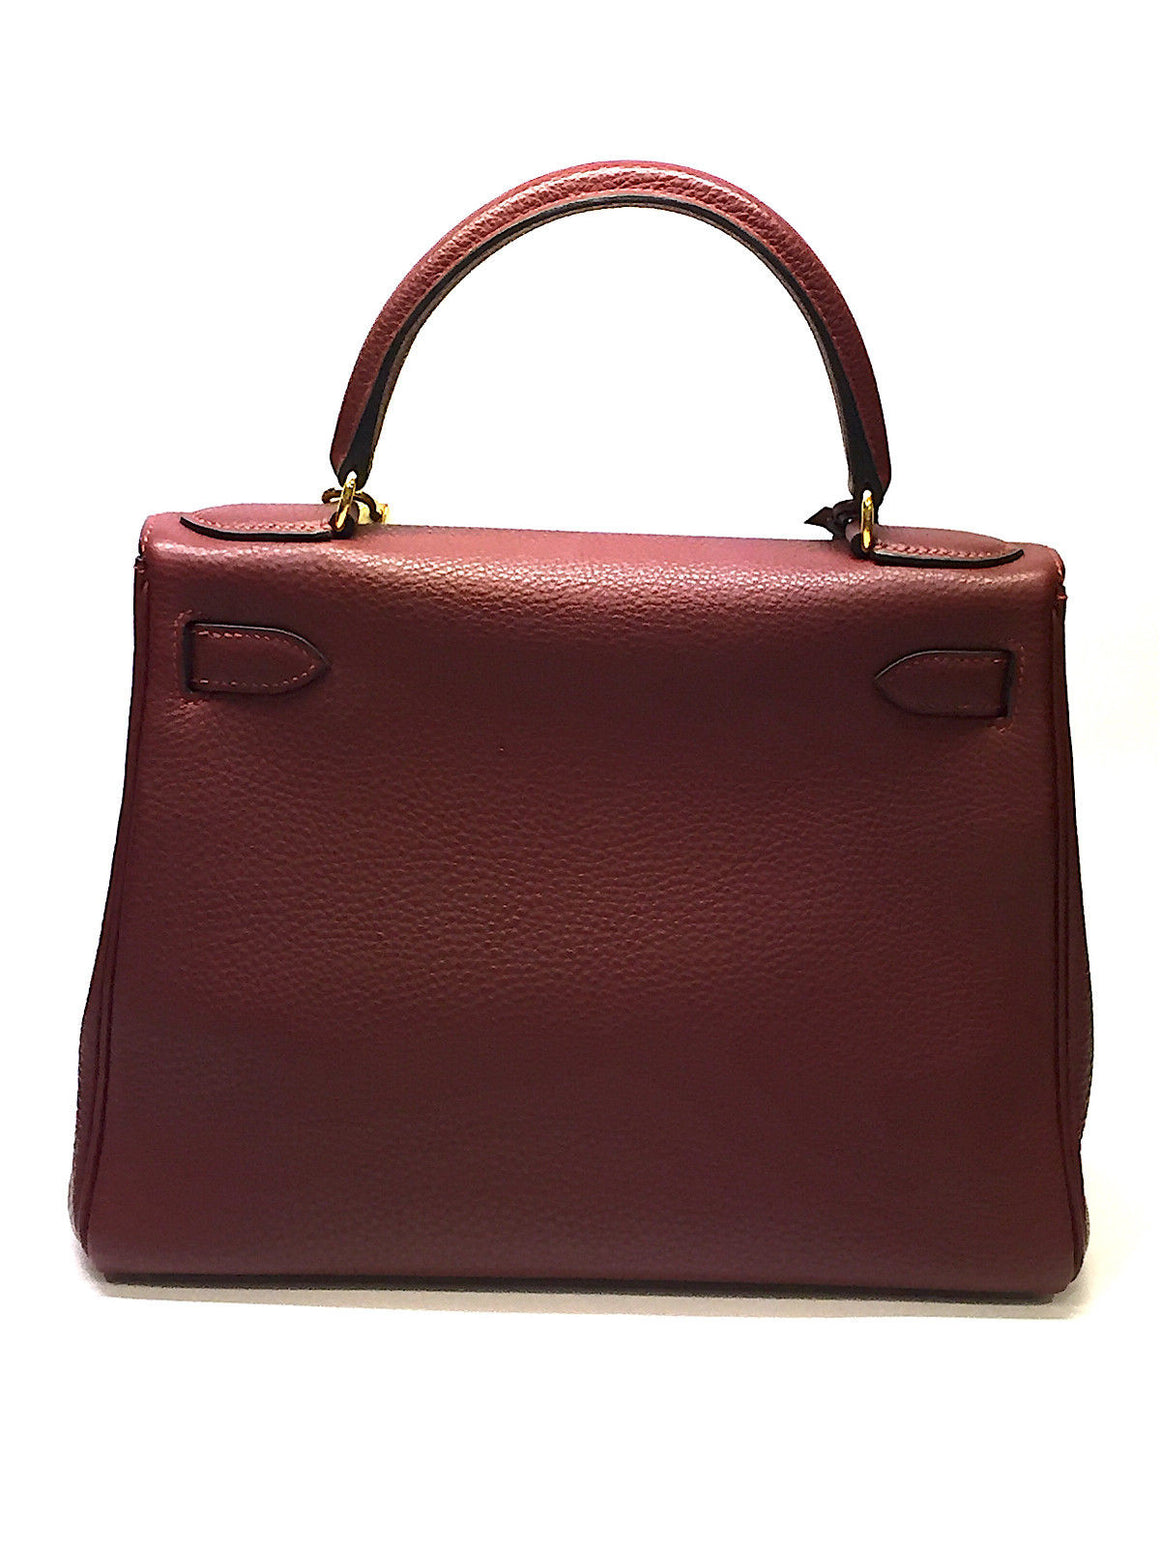 bisbiz.com Hermes Kelly 28cm Rouge Ash Togo Leather Gold H/w Retourne Bag - Bis Luxury Resale